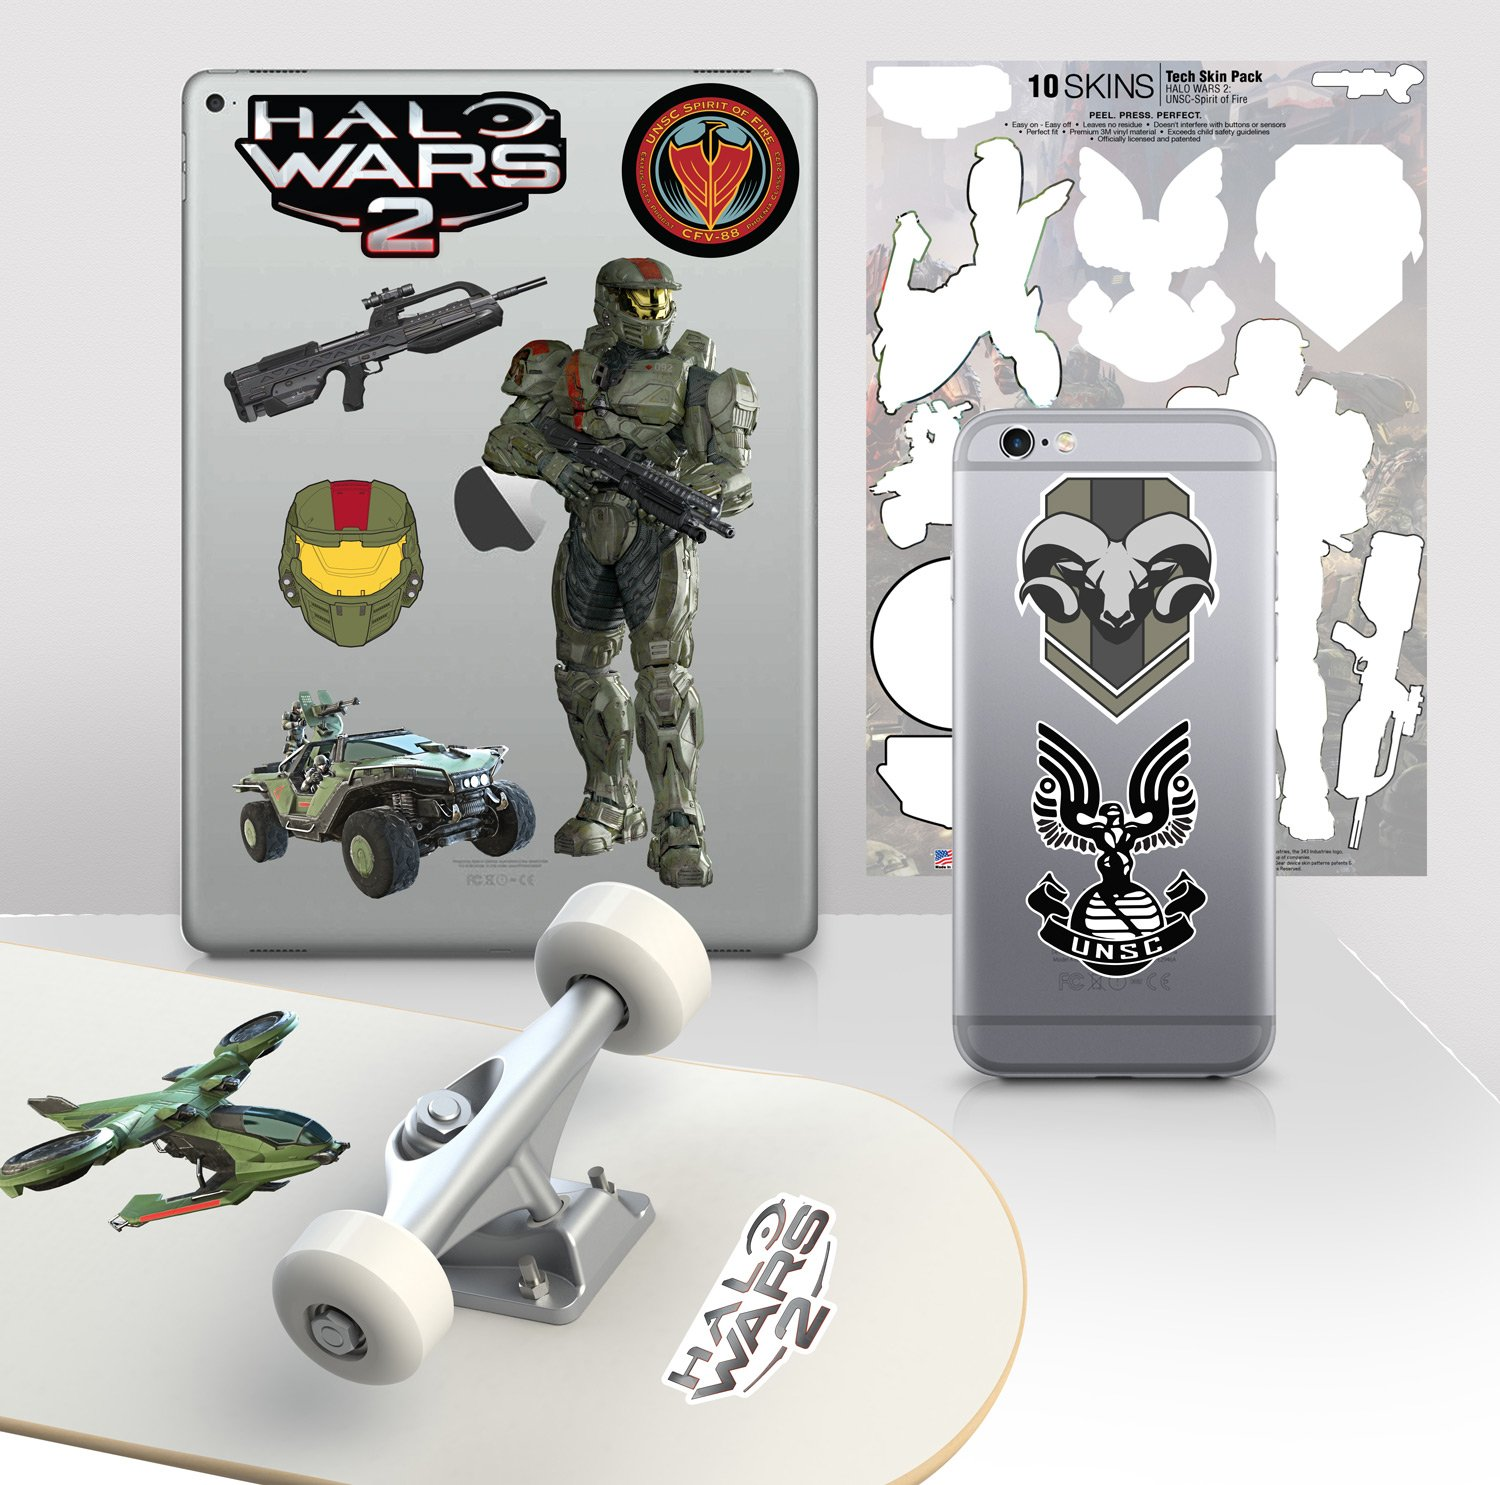 Controller Gear Halo Wars 2 - 7''x11'' UNSC-Spirit of Fire Decal Skin Pack - Officially Licensed - Xbox One